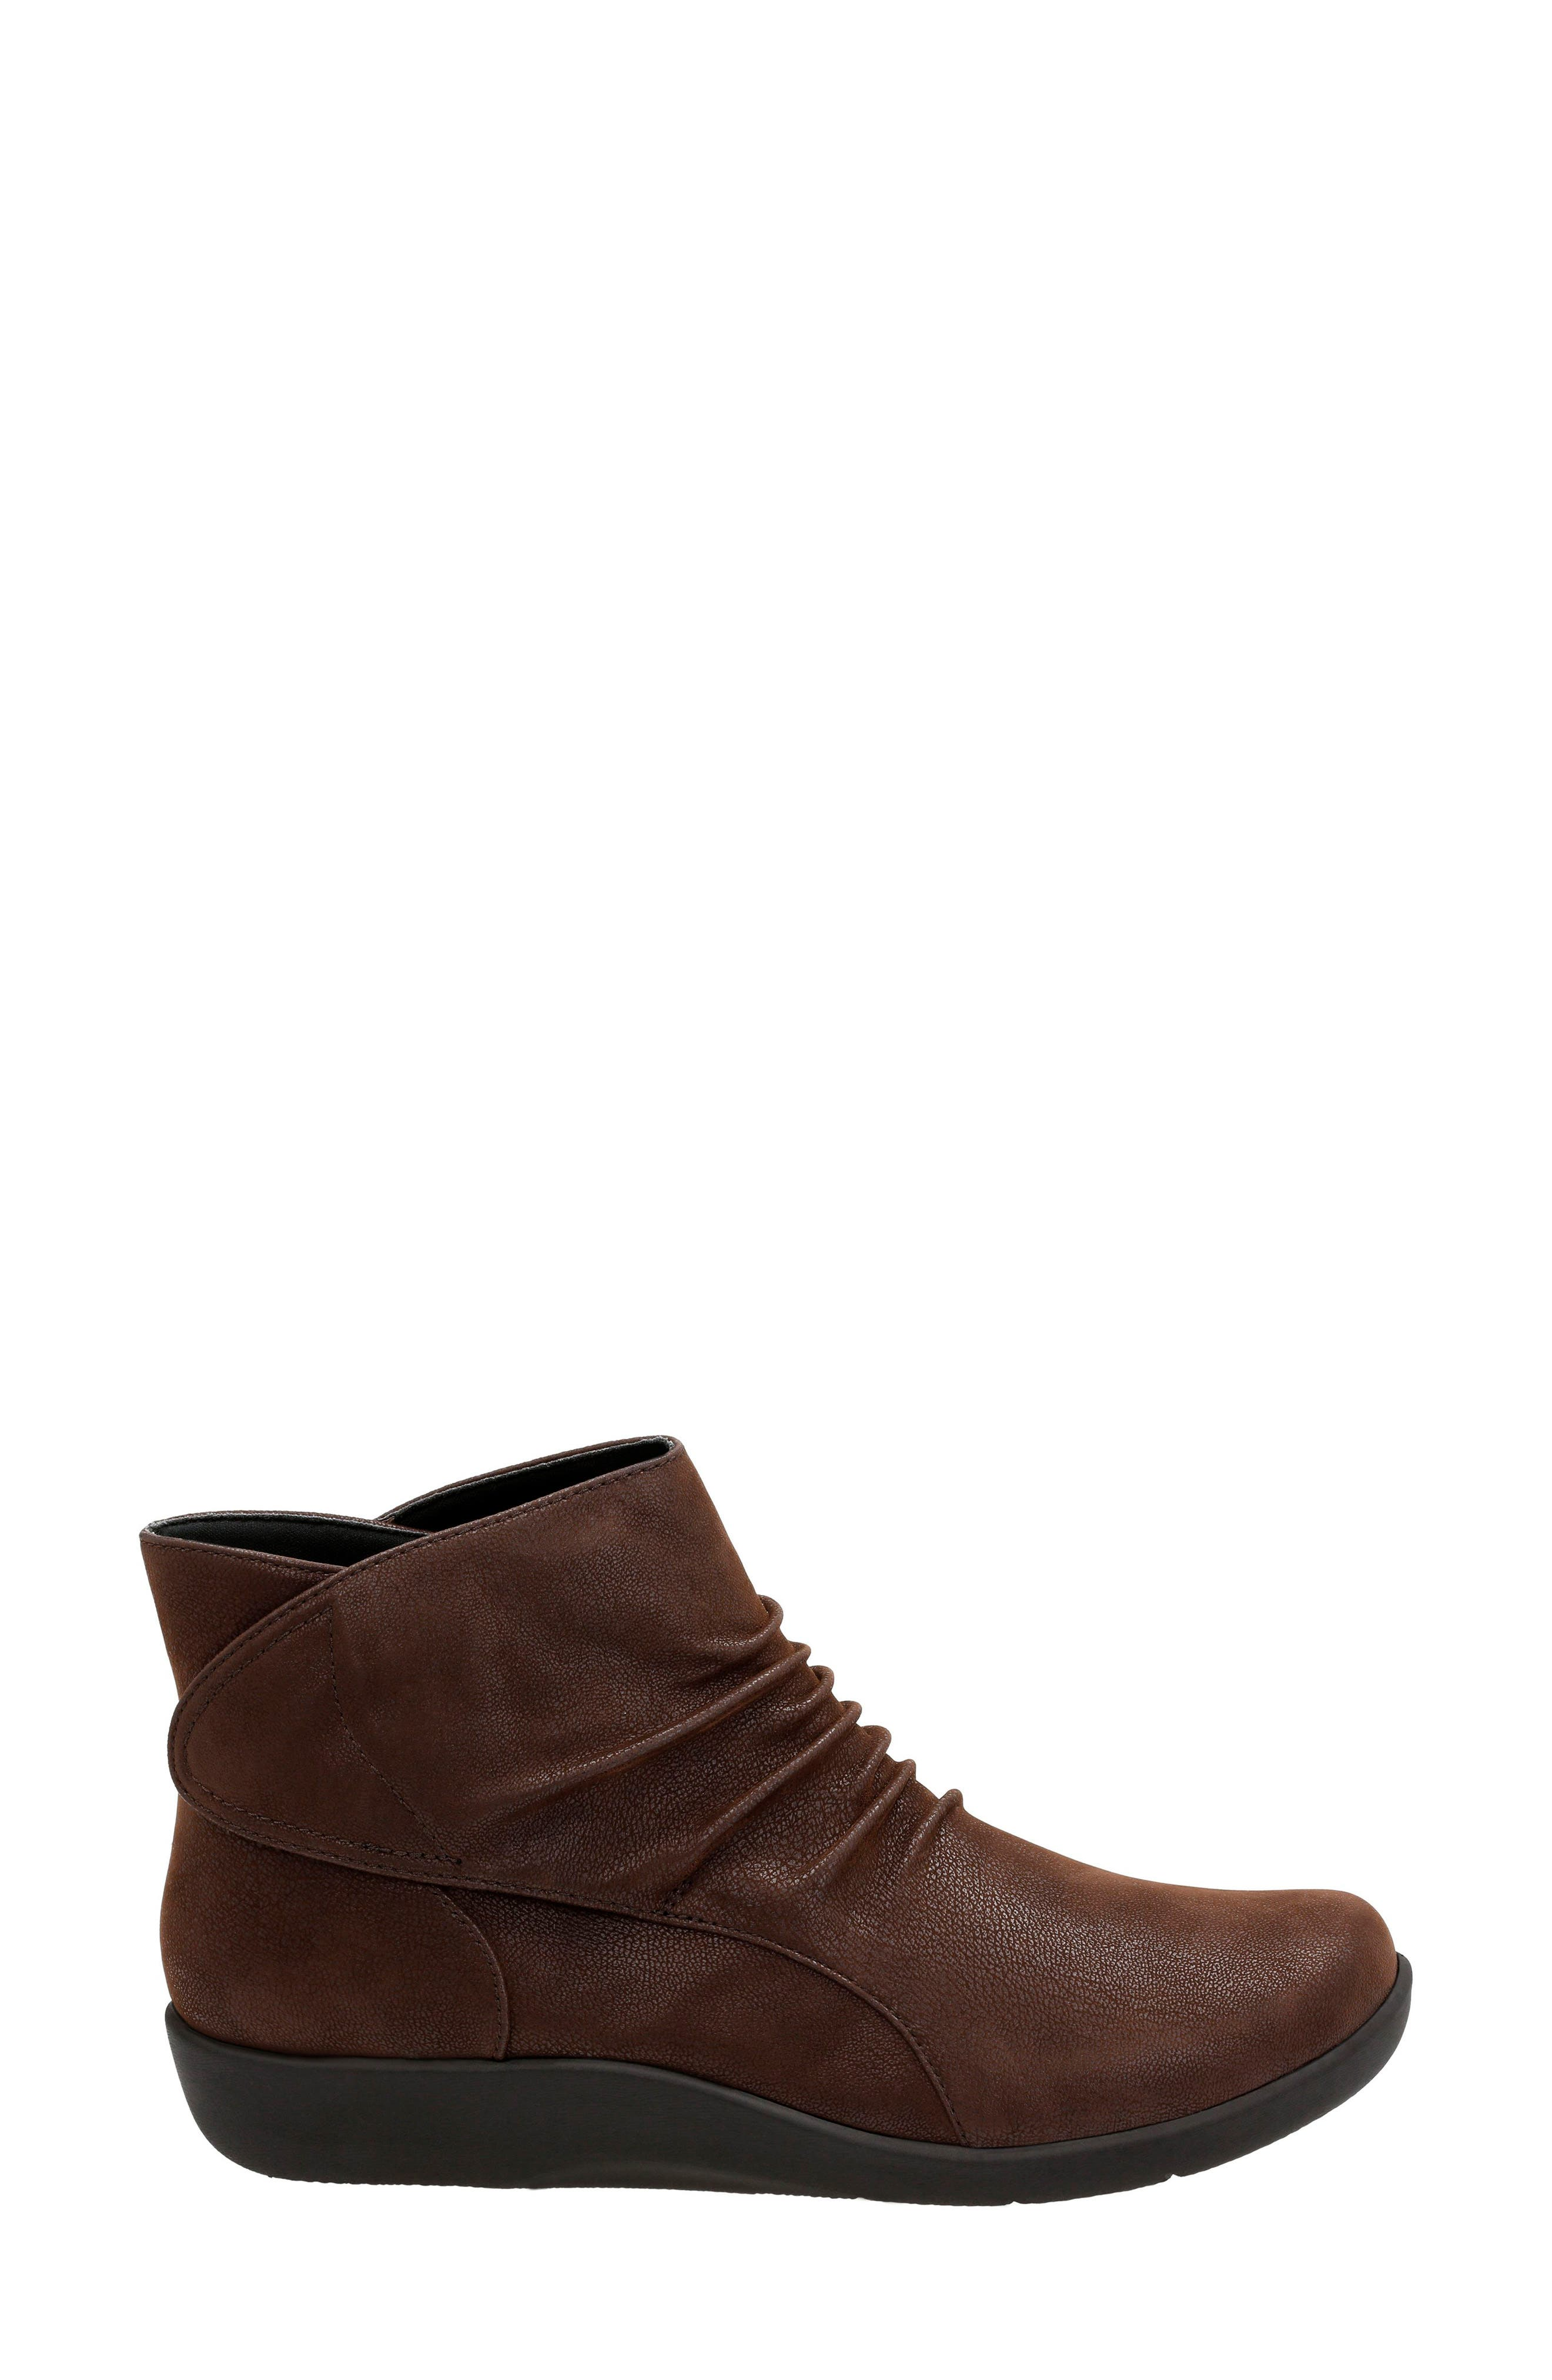 Sillian Sway Boot,                             Alternate thumbnail 3, color,                             BROWN FABRIC